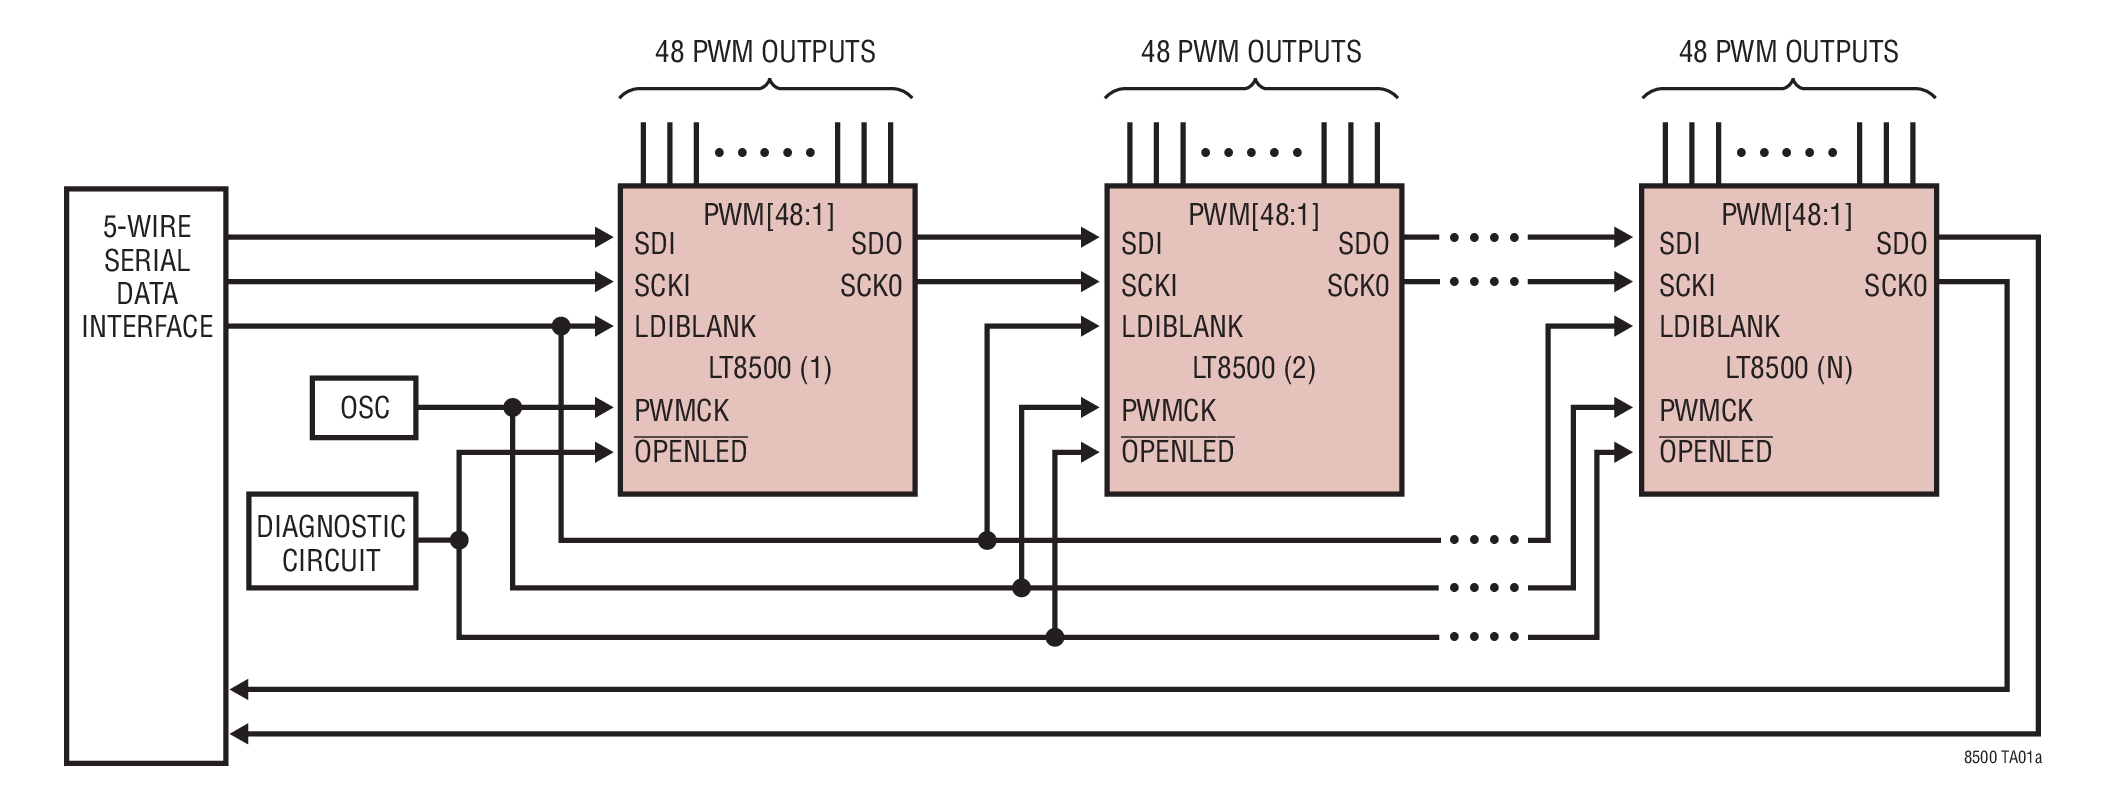 Lt8500 48 Channel Led Pwm Generator With 12 Bit Resolution And Driver Using Ltm8042 Module Boost Applications